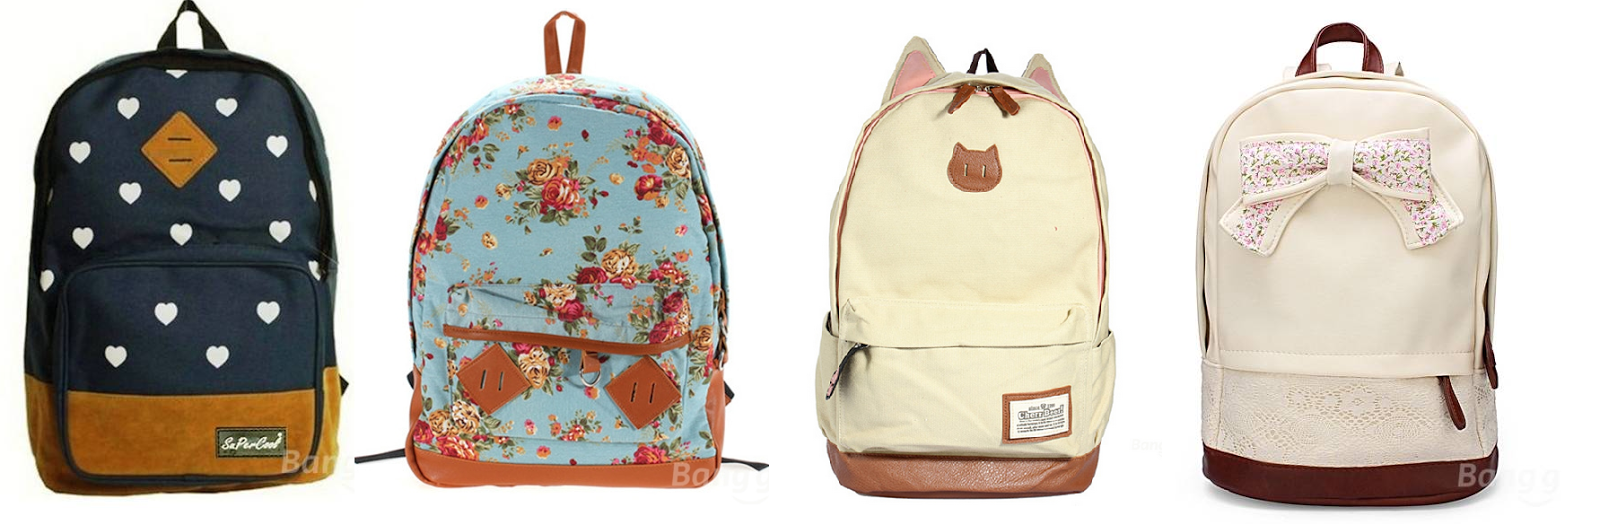 Cute Girly Backpacks kM6U2uEn